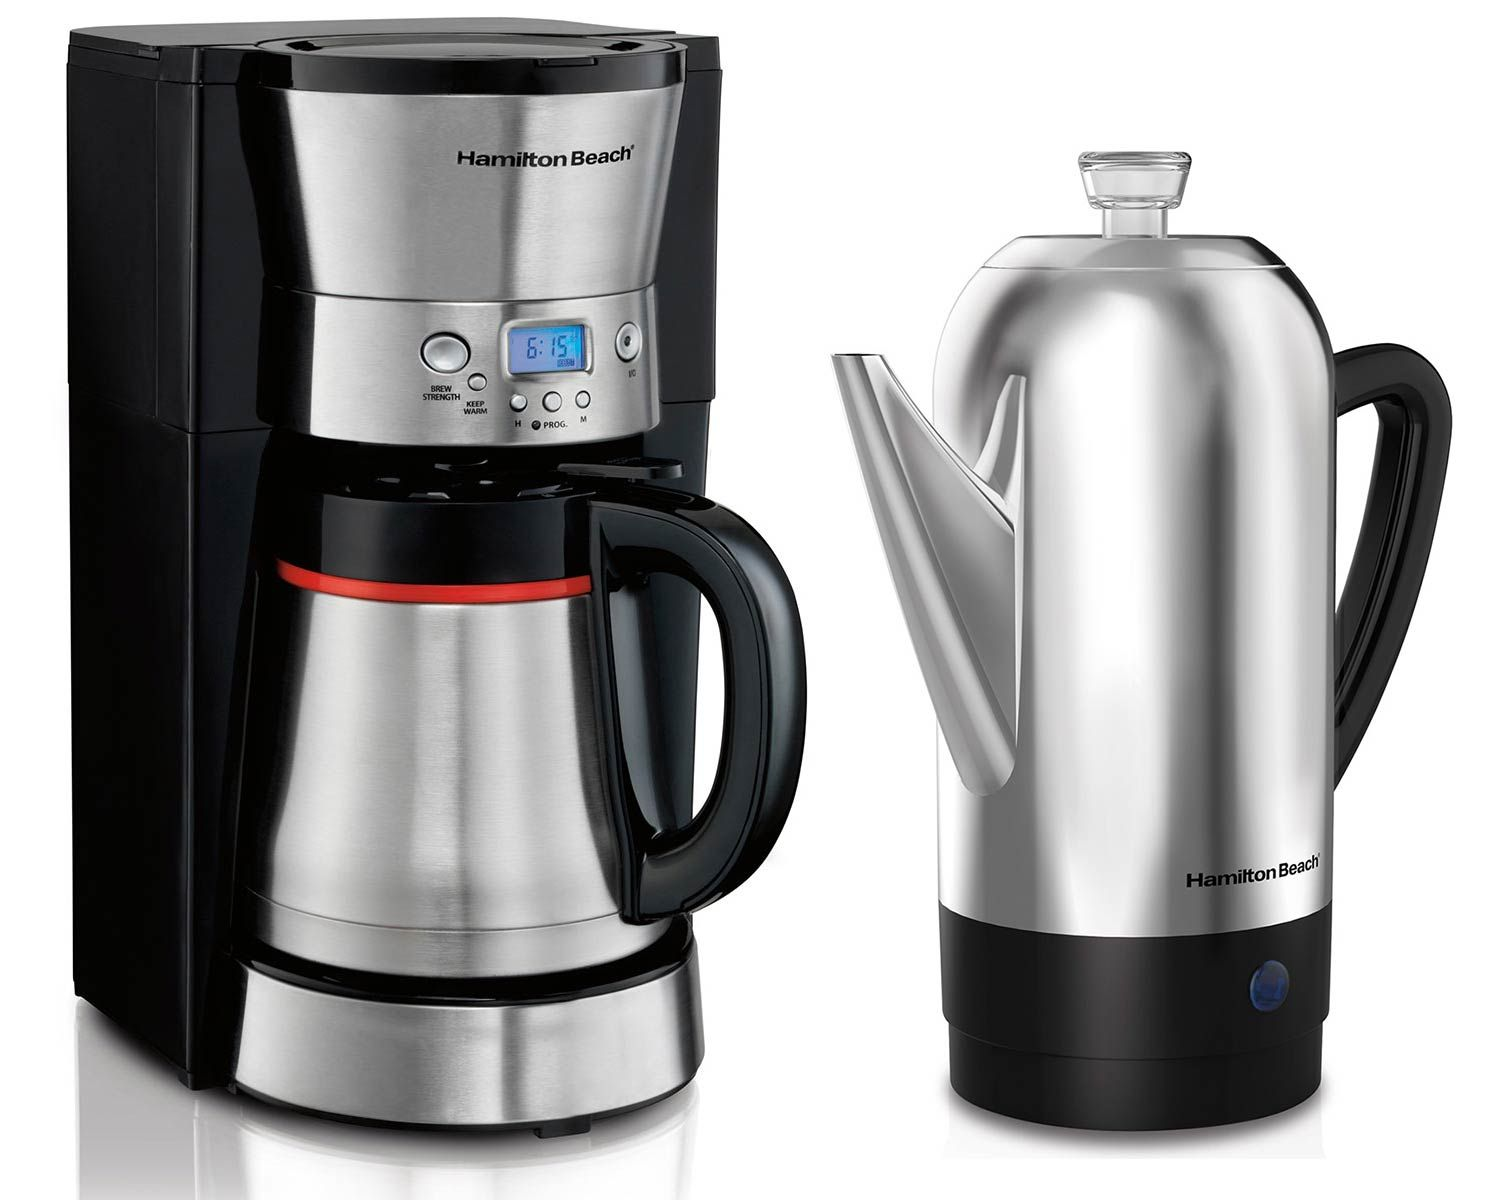 Stainless Steel Coffee Makers. Coffee maker, Stainless